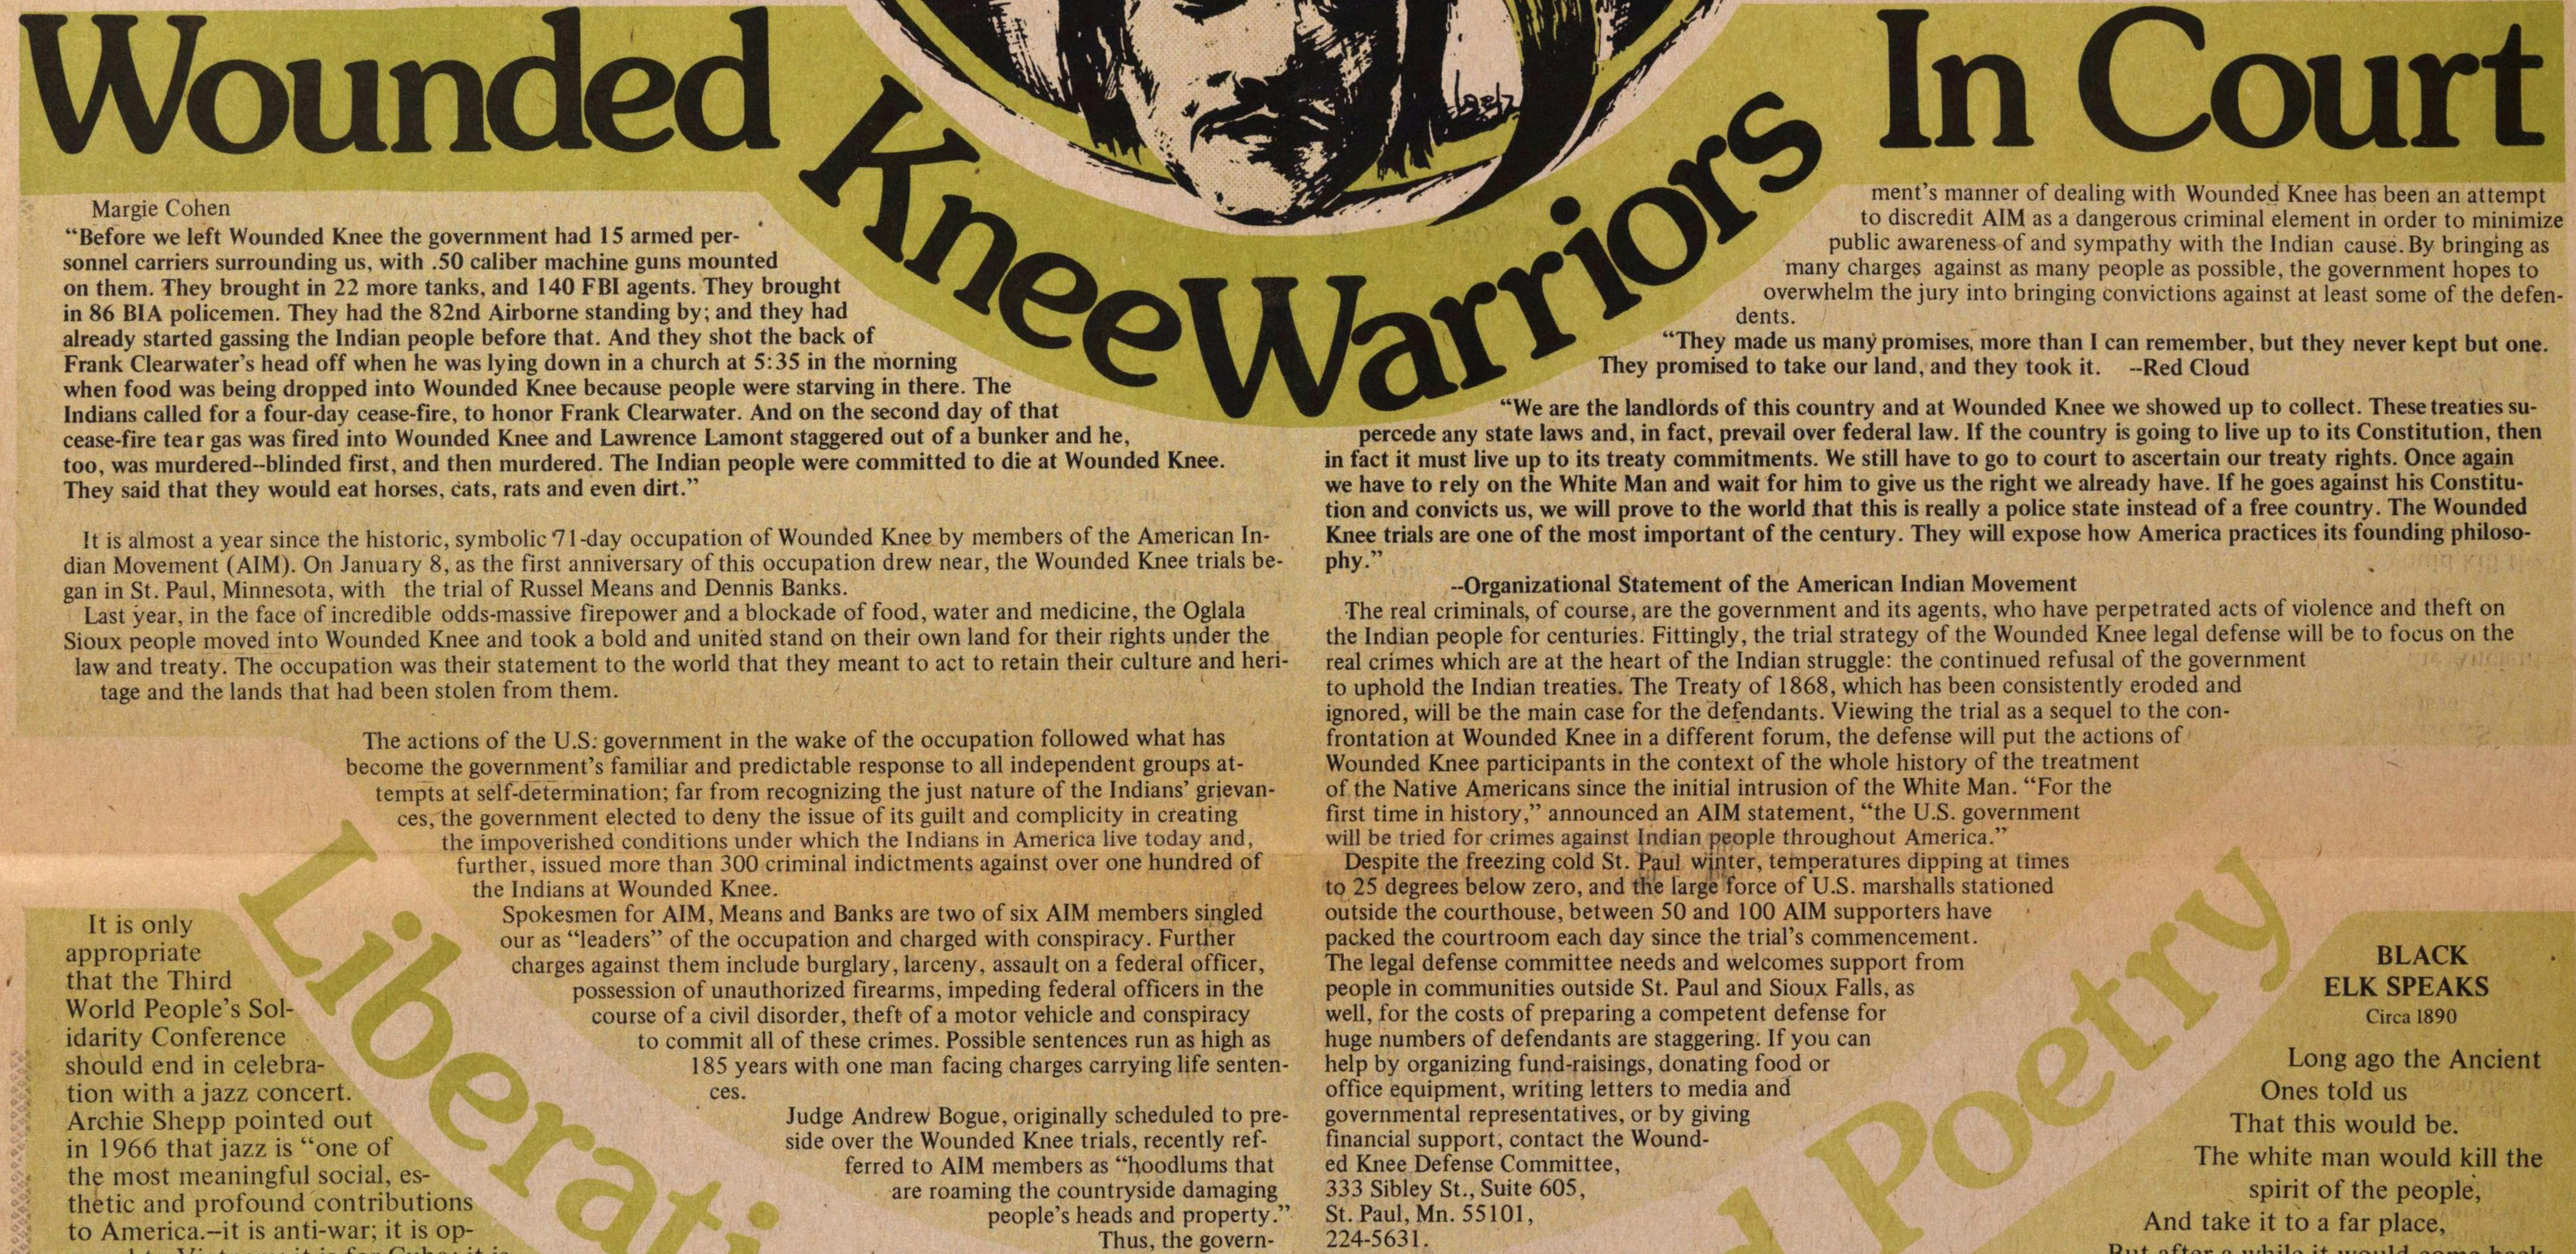 Wounded Knee Warriors In Court image